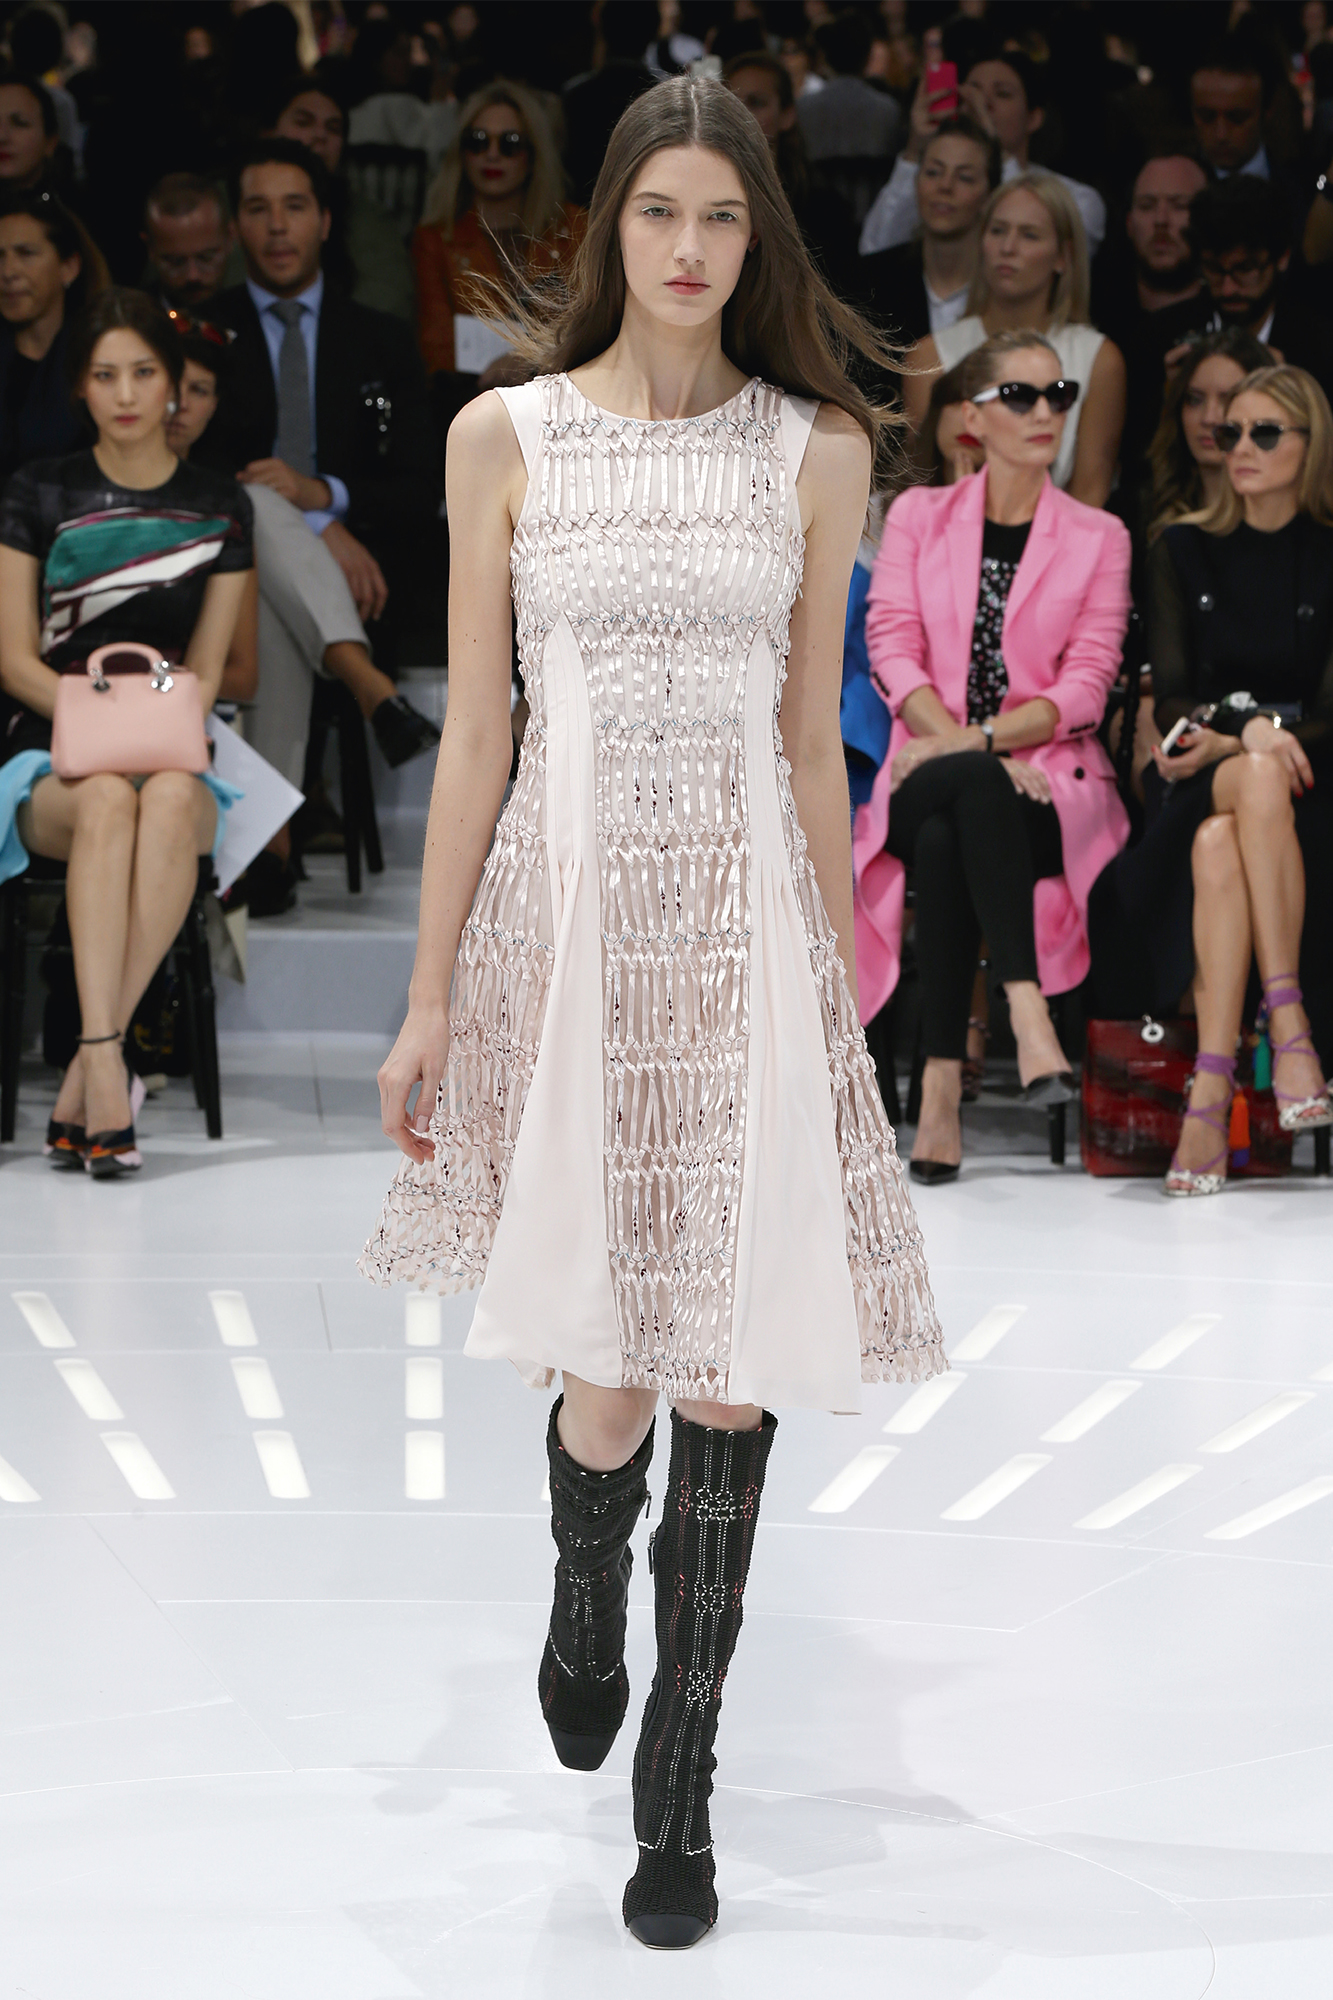 New Western Fashion Christian Dior Ready To Wear Dresses Spring Summer Collection 2015 (34)